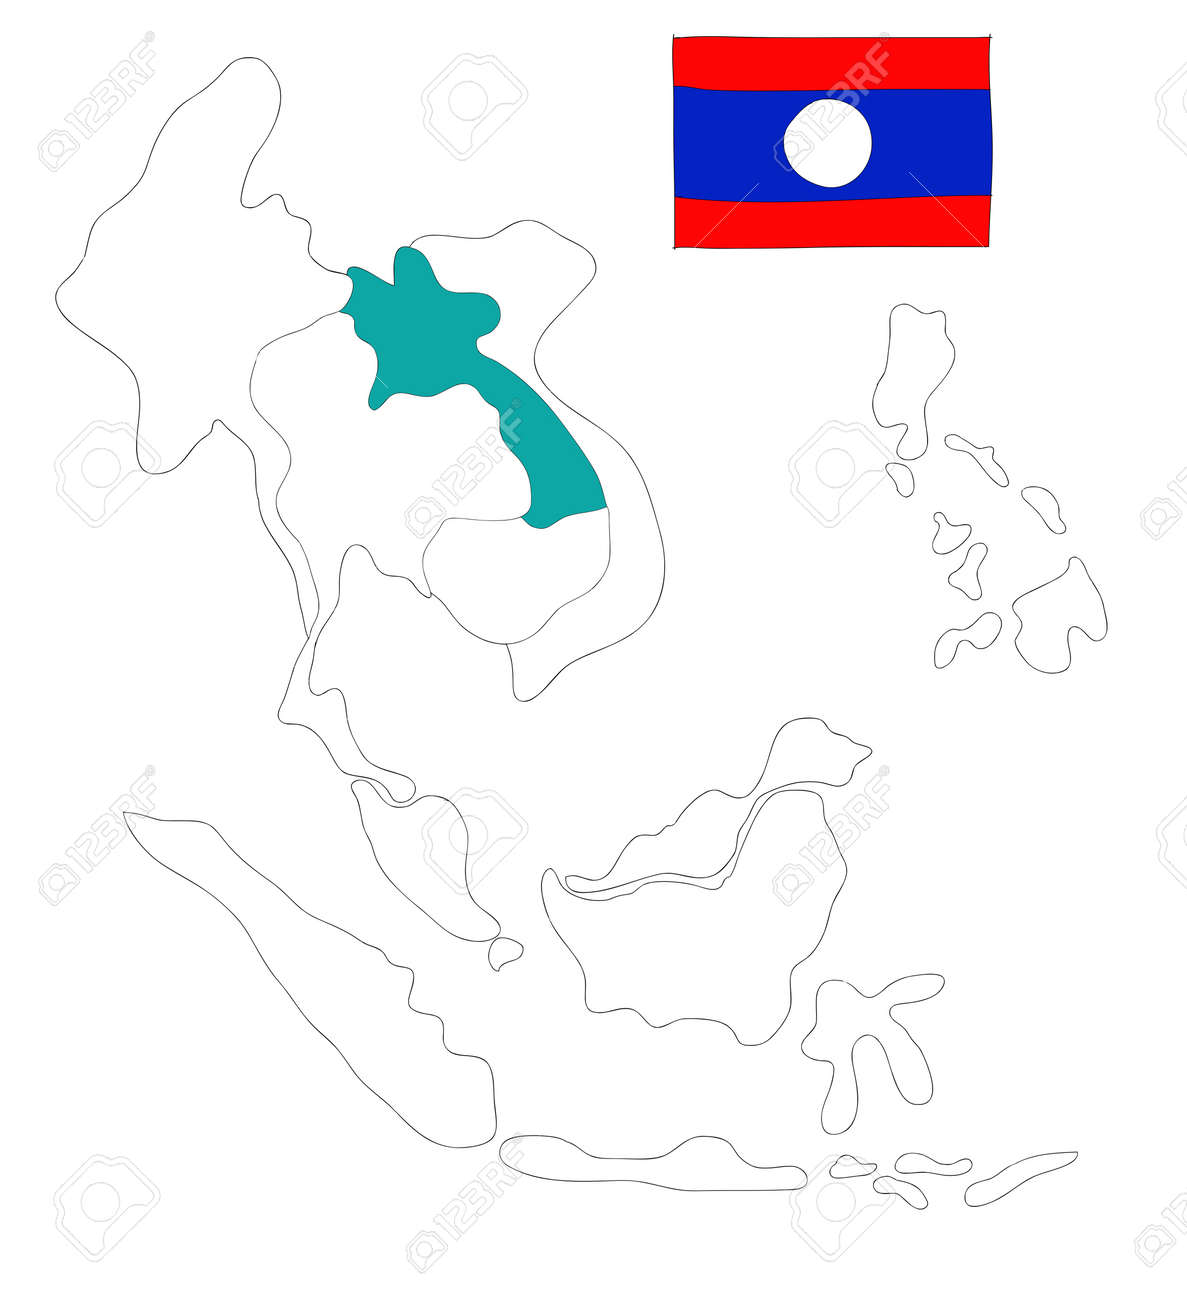 drawing  map of South East Asia countries that will be member of AEC with Laos flag symbol Stock Photo - 17576546